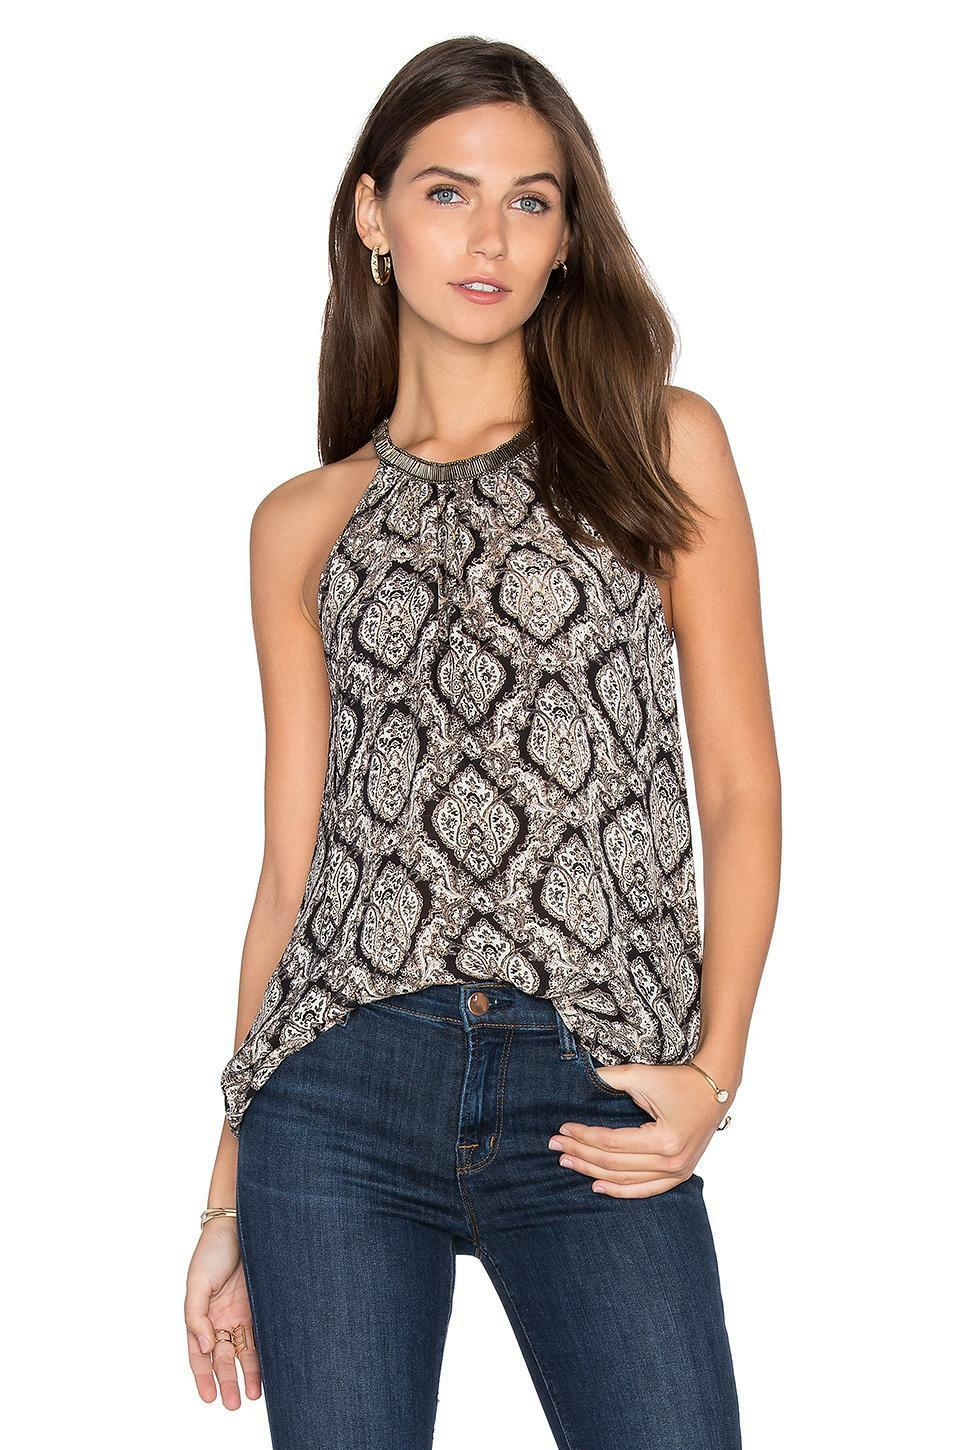 NWT  S, M, L JOIE 'Francis' Embellished Beaded Print Halter Silk Blouse Top